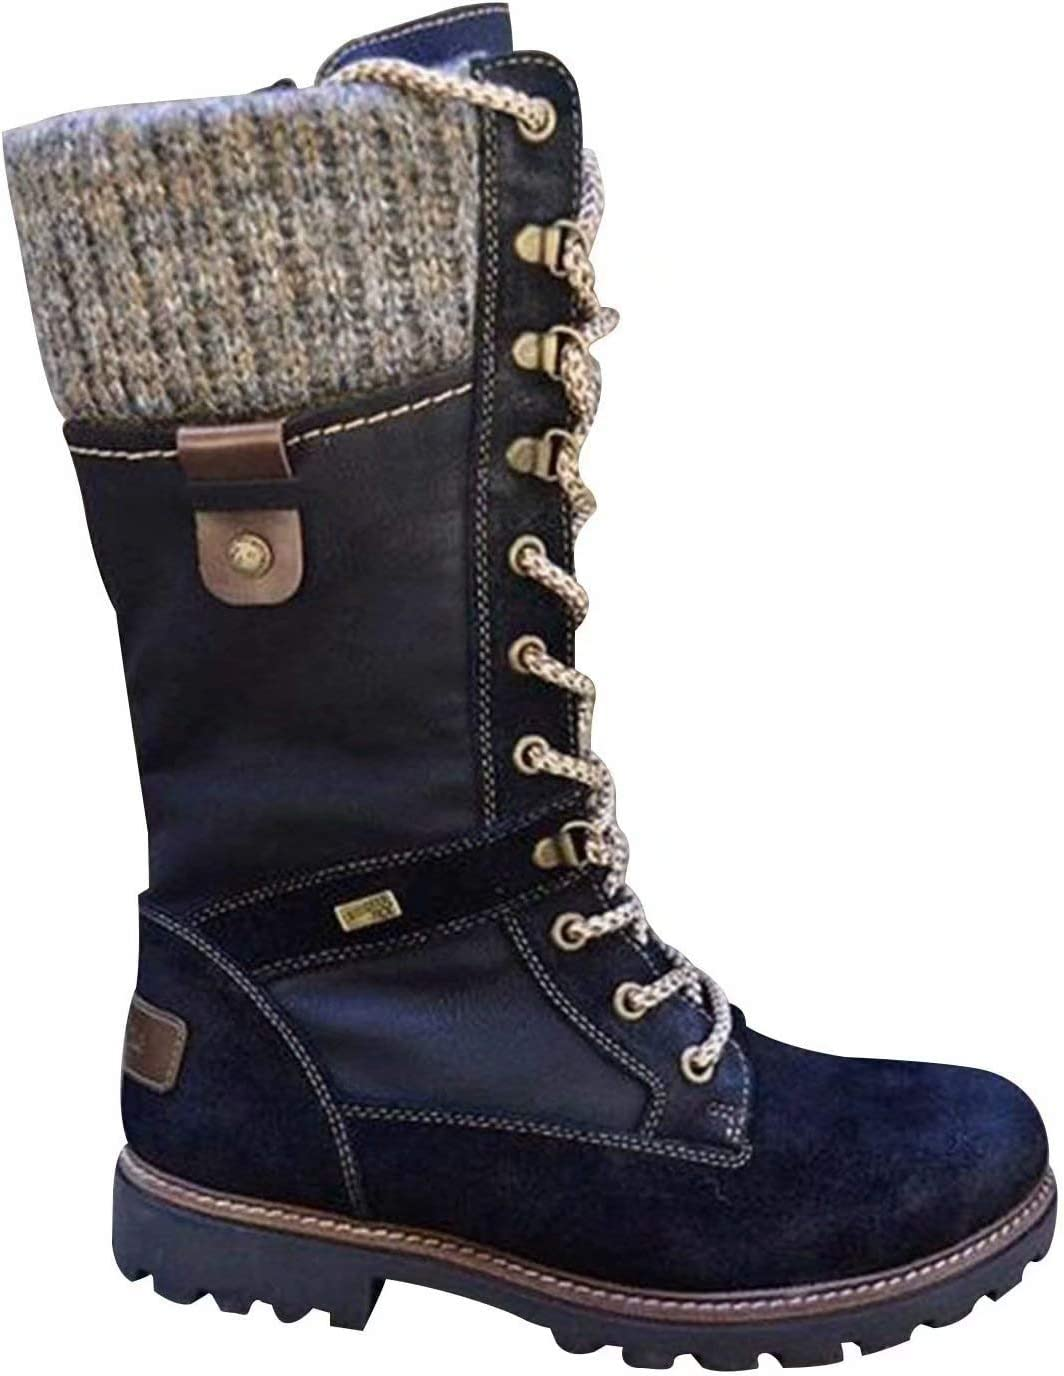 Women's Mid Calf Combat Riding Boots Low Chunky Heel Round Toe Lace Up Knit Sweater Boot Flat Buckle Outdoor Boots